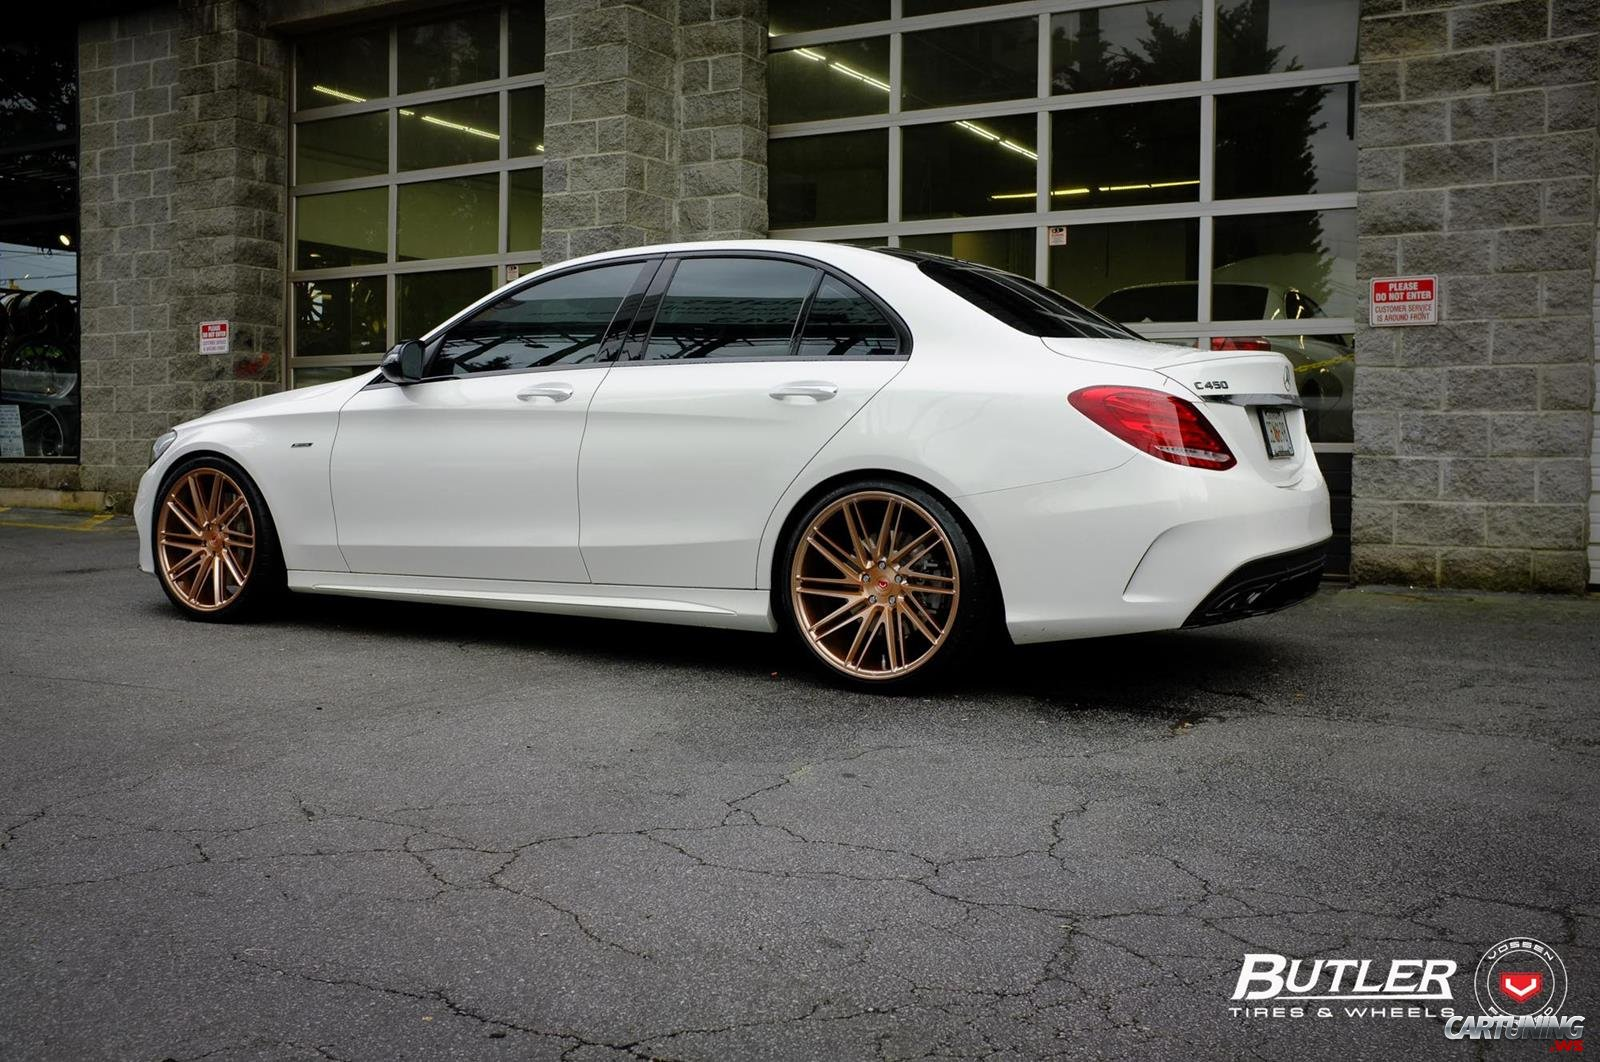 Stance mercedes benz c450 w205 rear for Mercedes benz c450